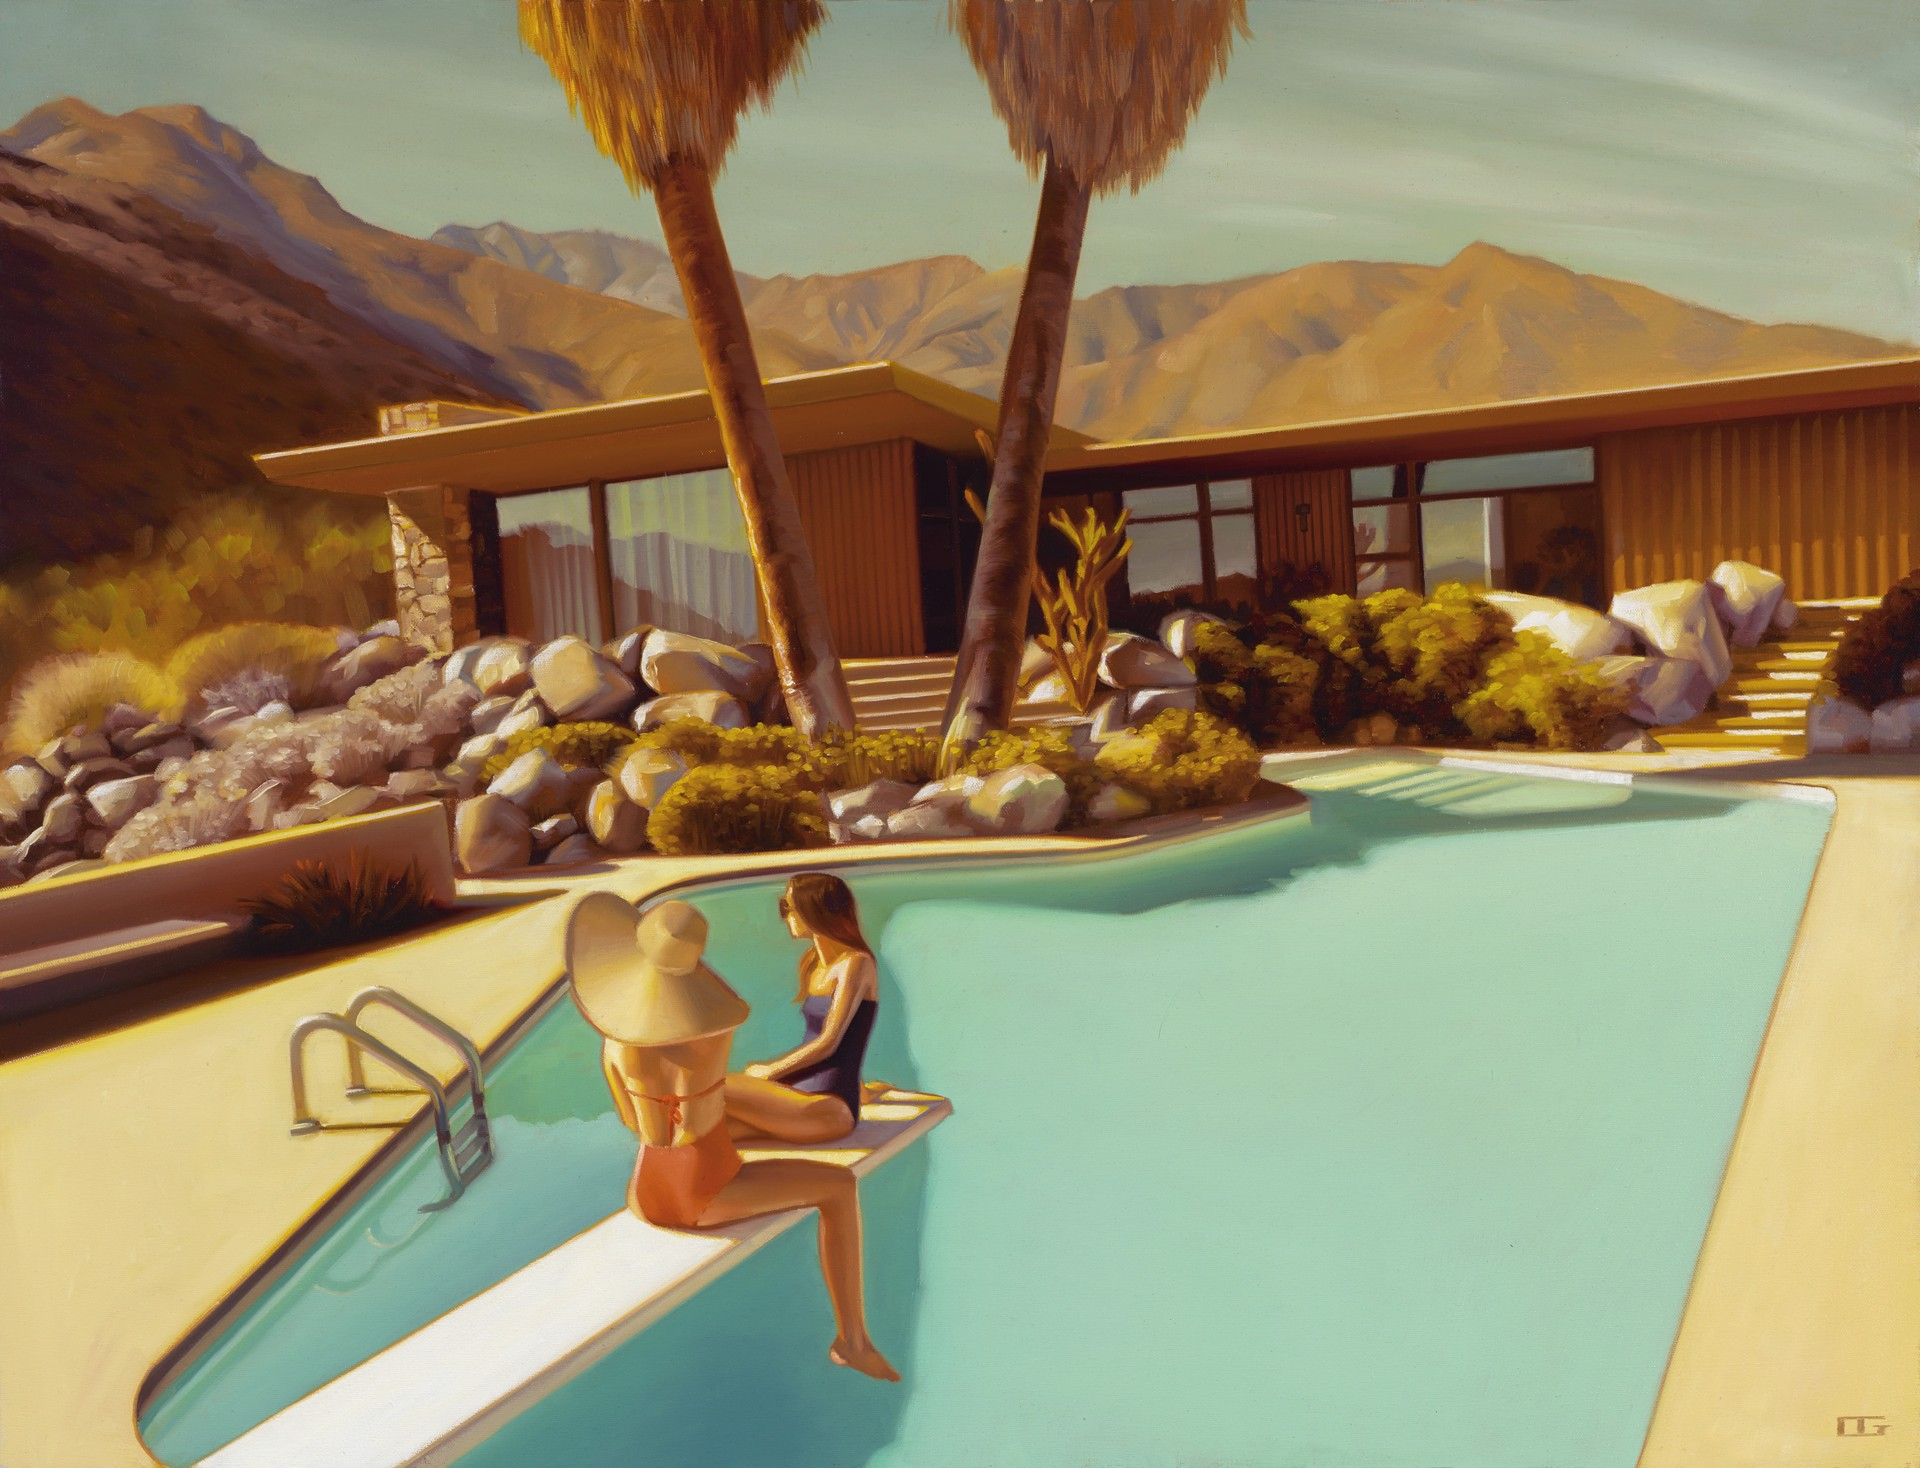 It's All Good (S/N) by Carrie Graber